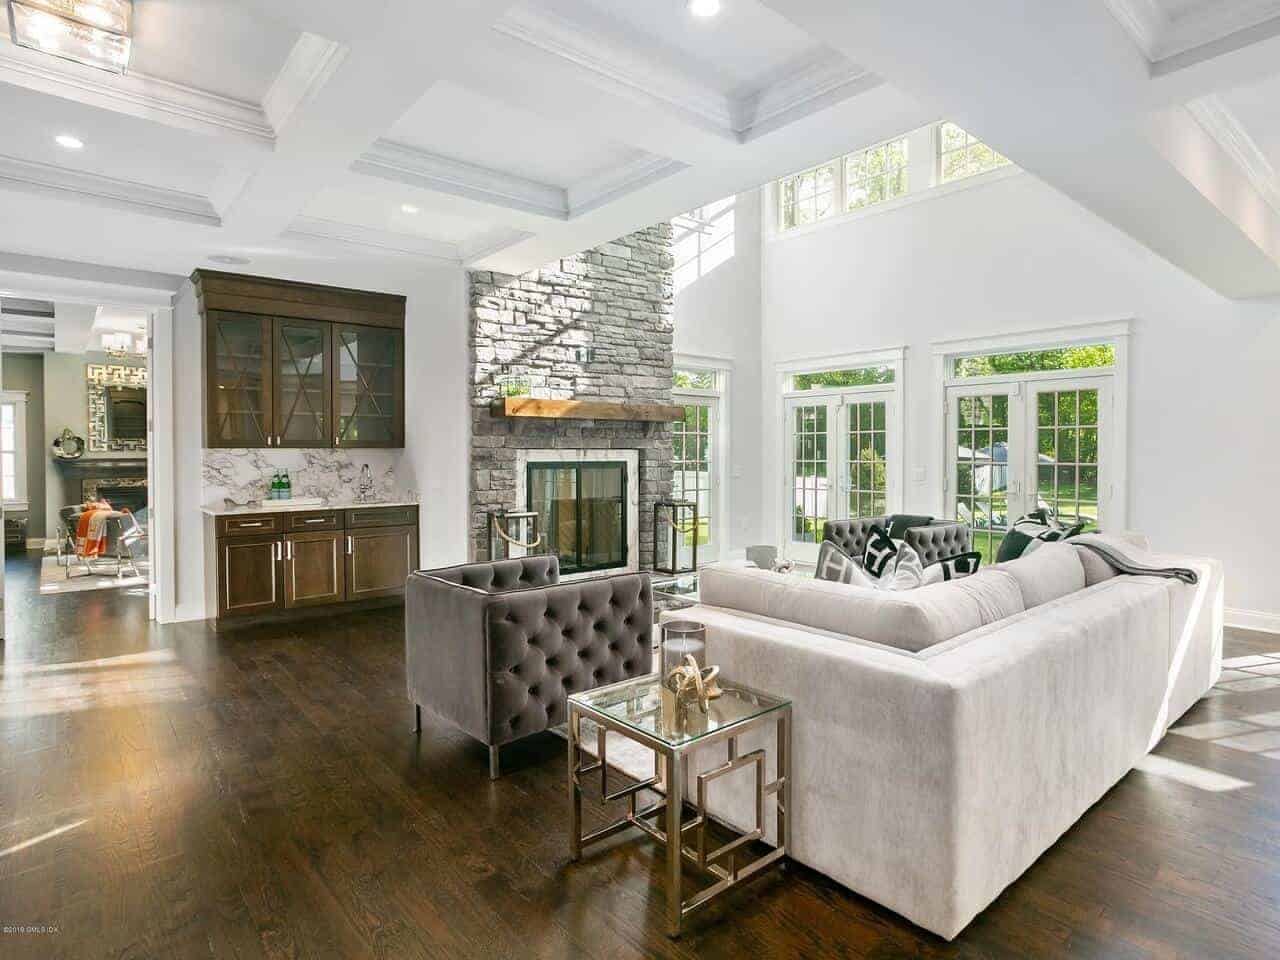 The dark hardwood flooring of this charming living room is a nice contrast for the white coffered ceiling that opens up to a section with a high ceiling and walls filled with tall windows and doors illuminating the fireplace and the sofa set.